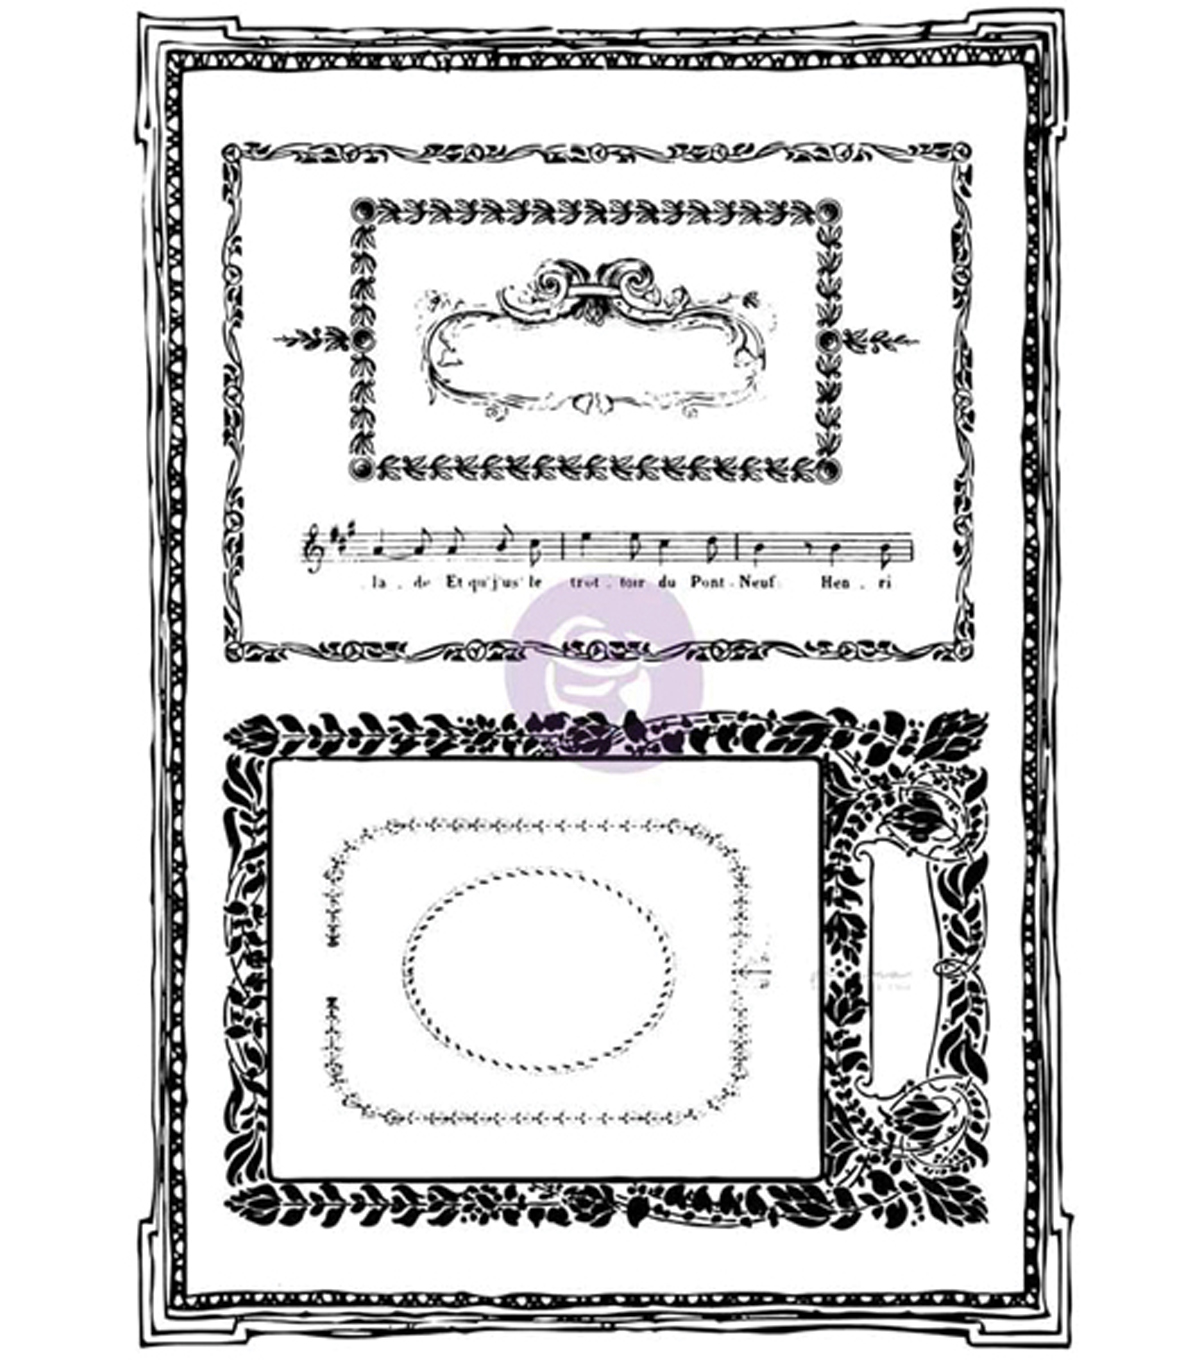 Prima Marketing Iron Orchid Designs 8 pk Cling Stamps-Mini Frames